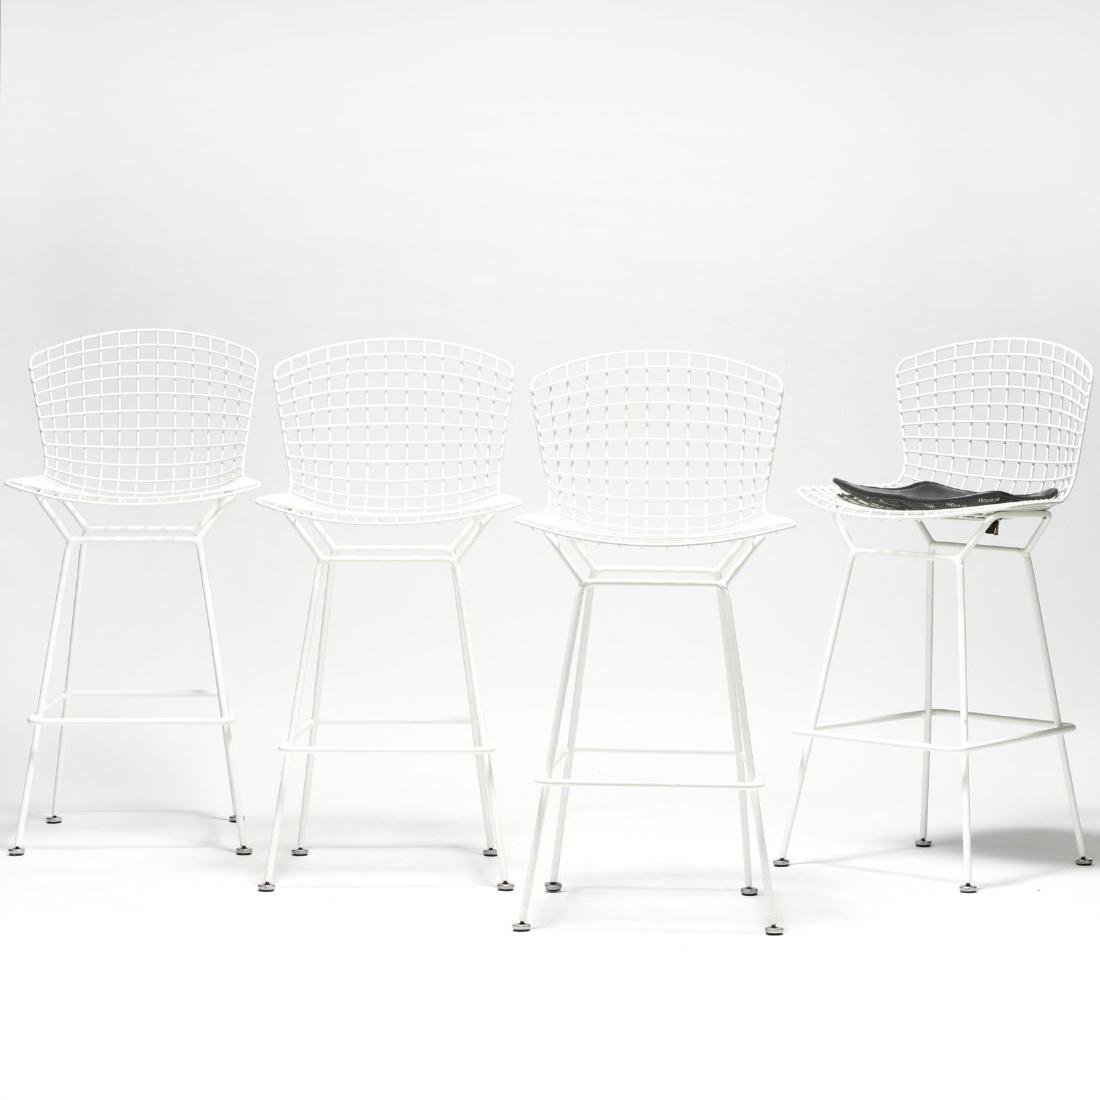 Harry Bertoia, Four Bar Stools